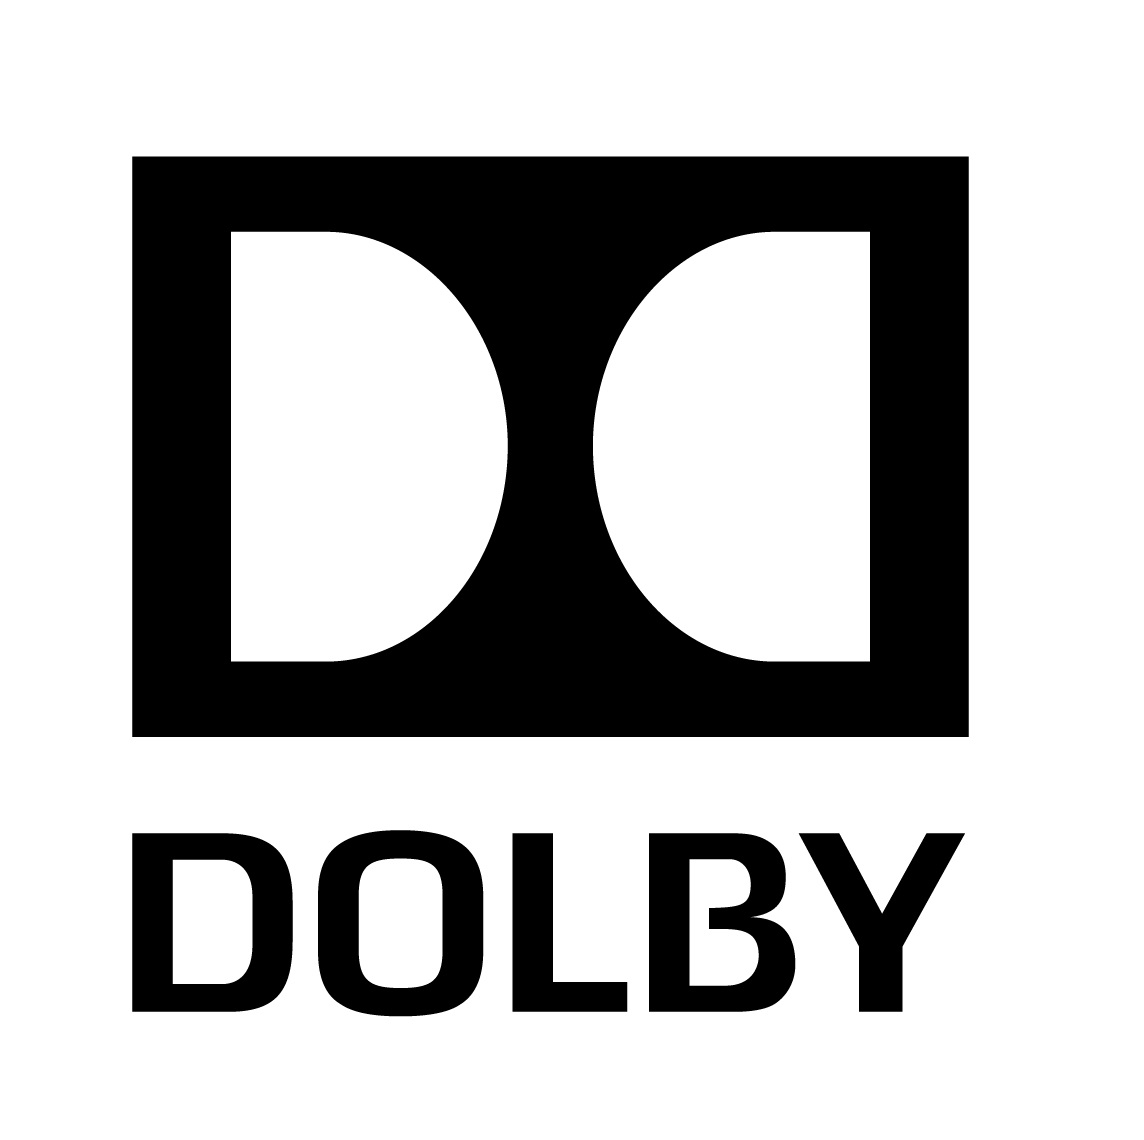 3. Dolby (Silver)